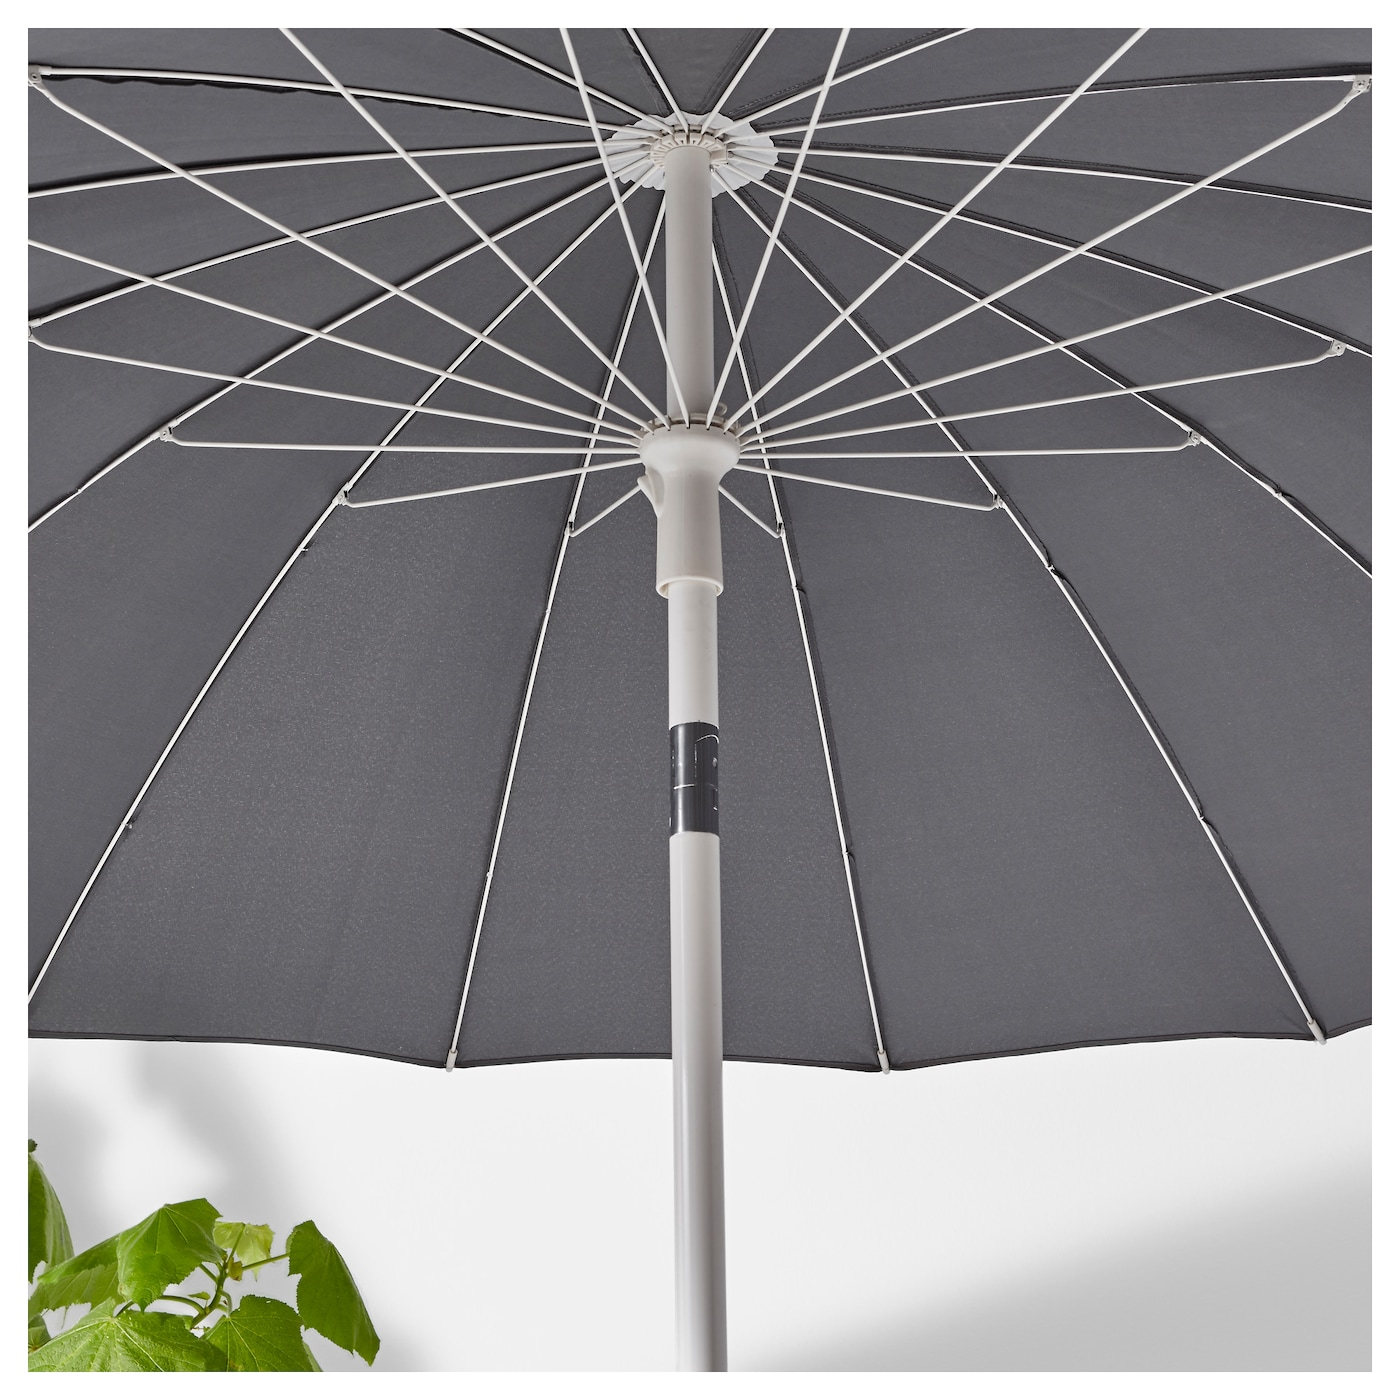 IKEA SAMSÖ parasol You can adjust the height of the parasol to perfectly suit your space.